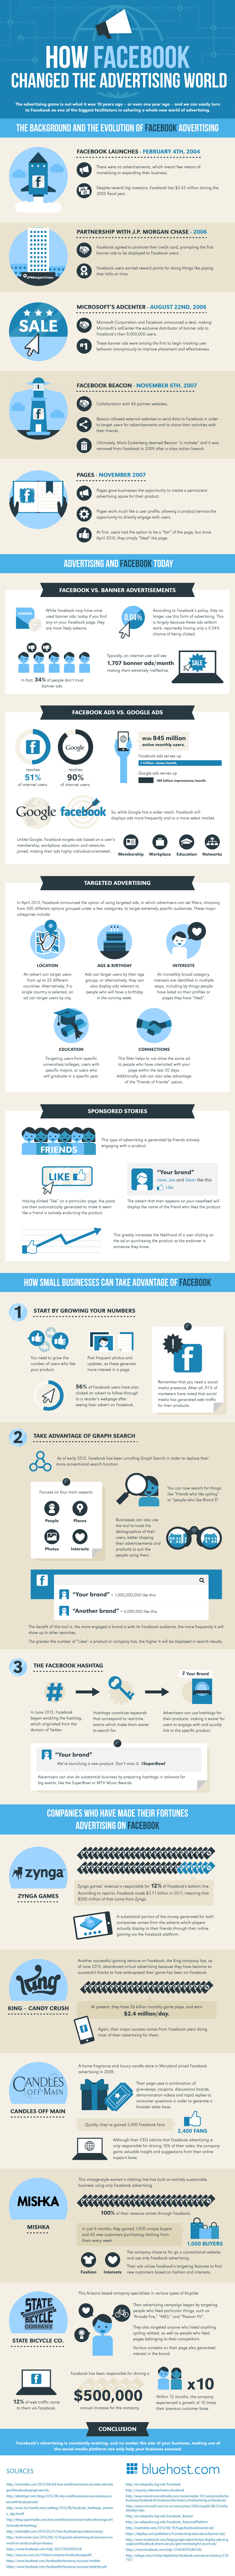 how-facebook-changed-the-advertising-world-infographic-1